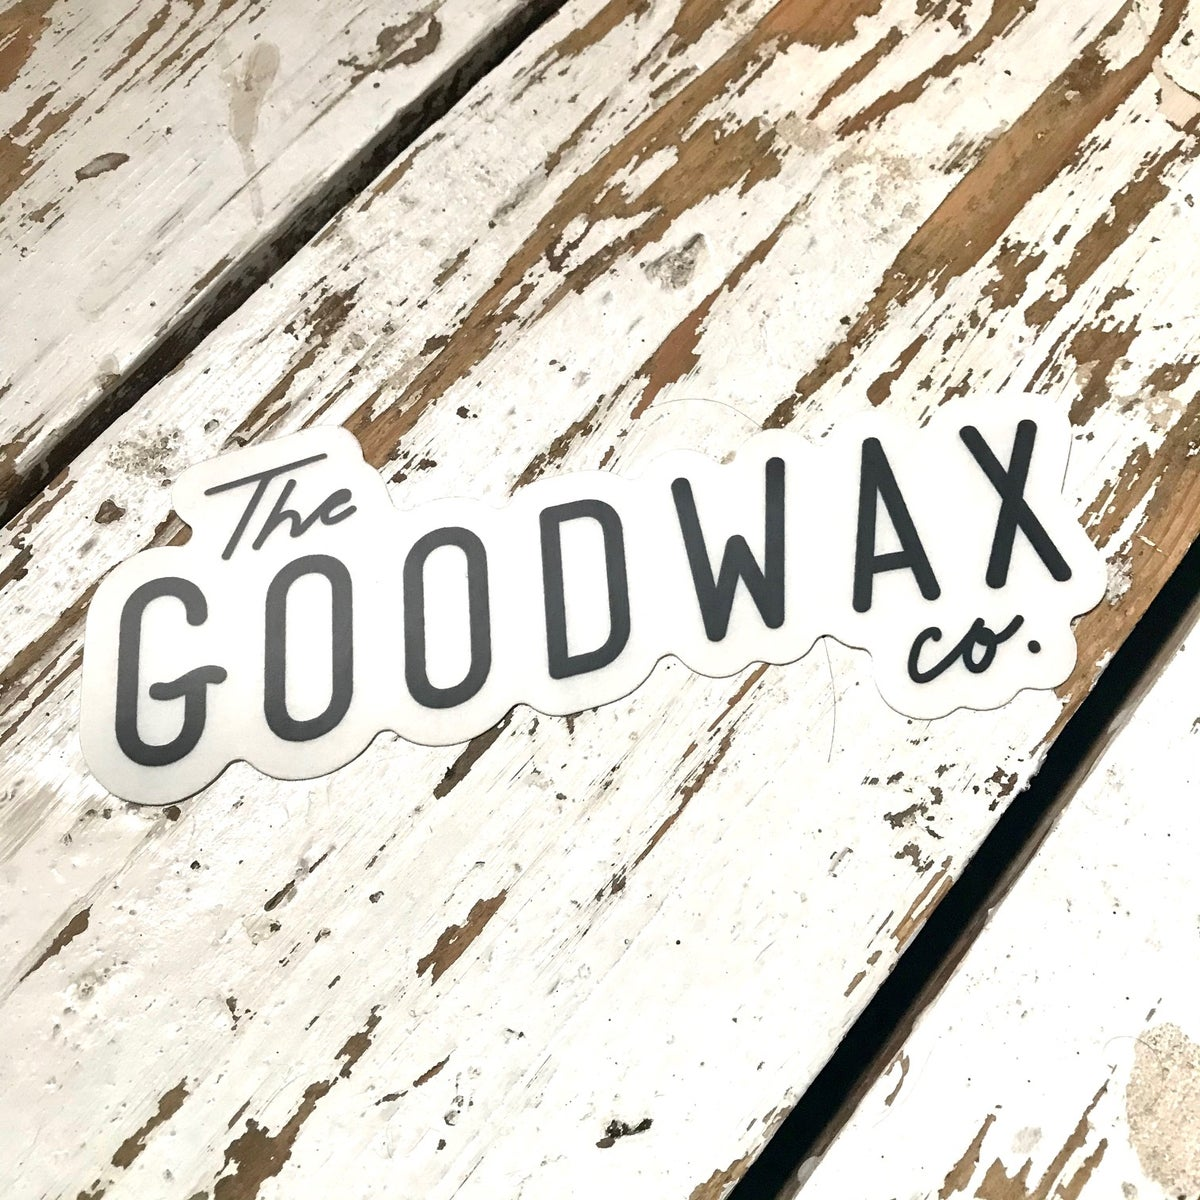 Image of The Good Wax Co. Sticker